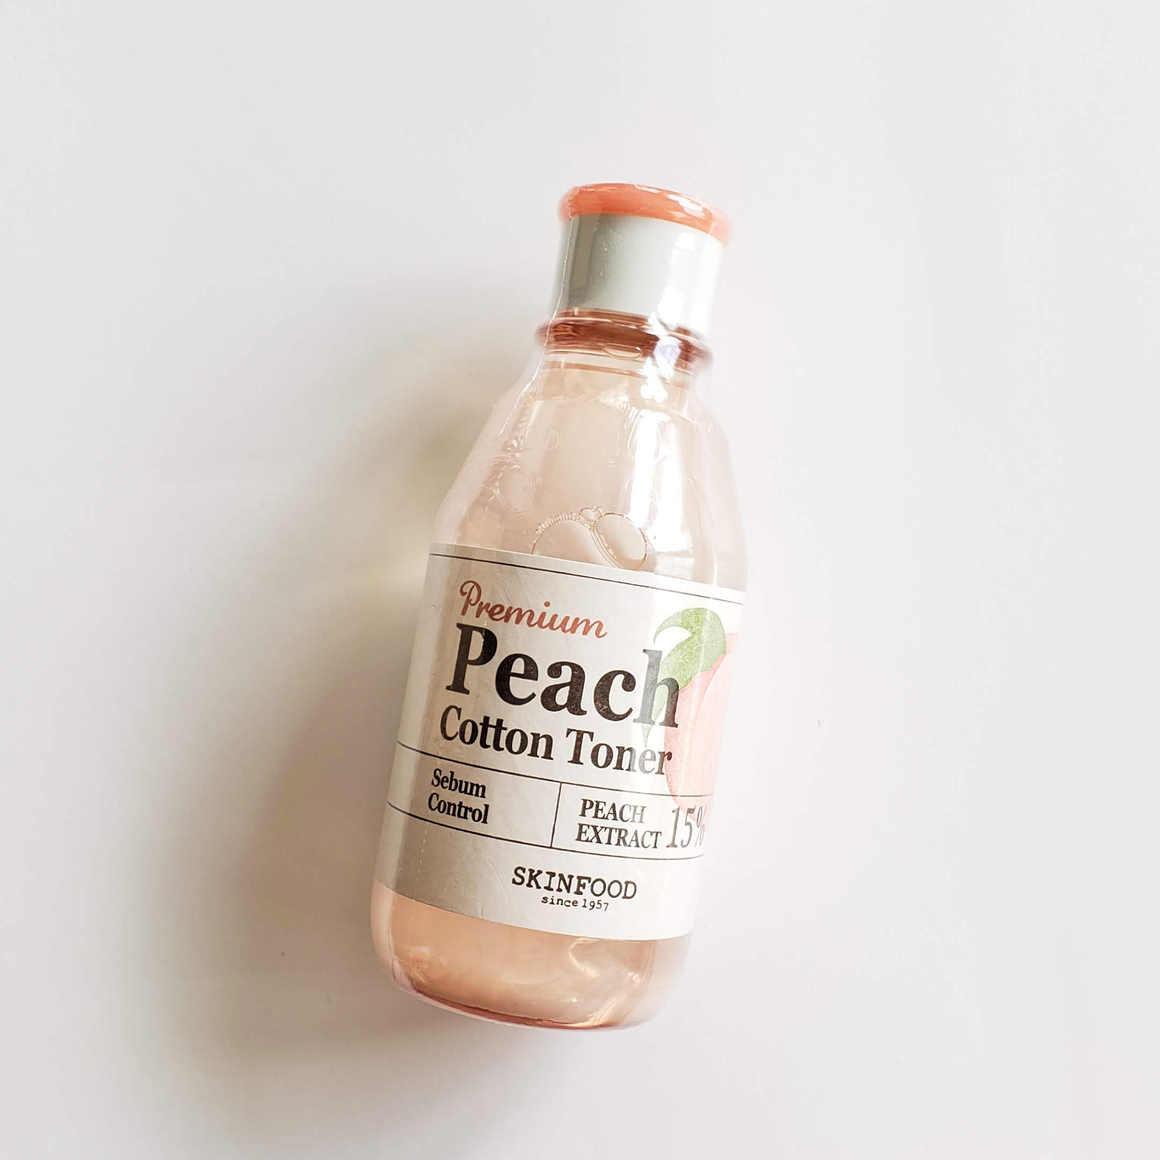 SKINFOOD Premium Peach Cotton Toner